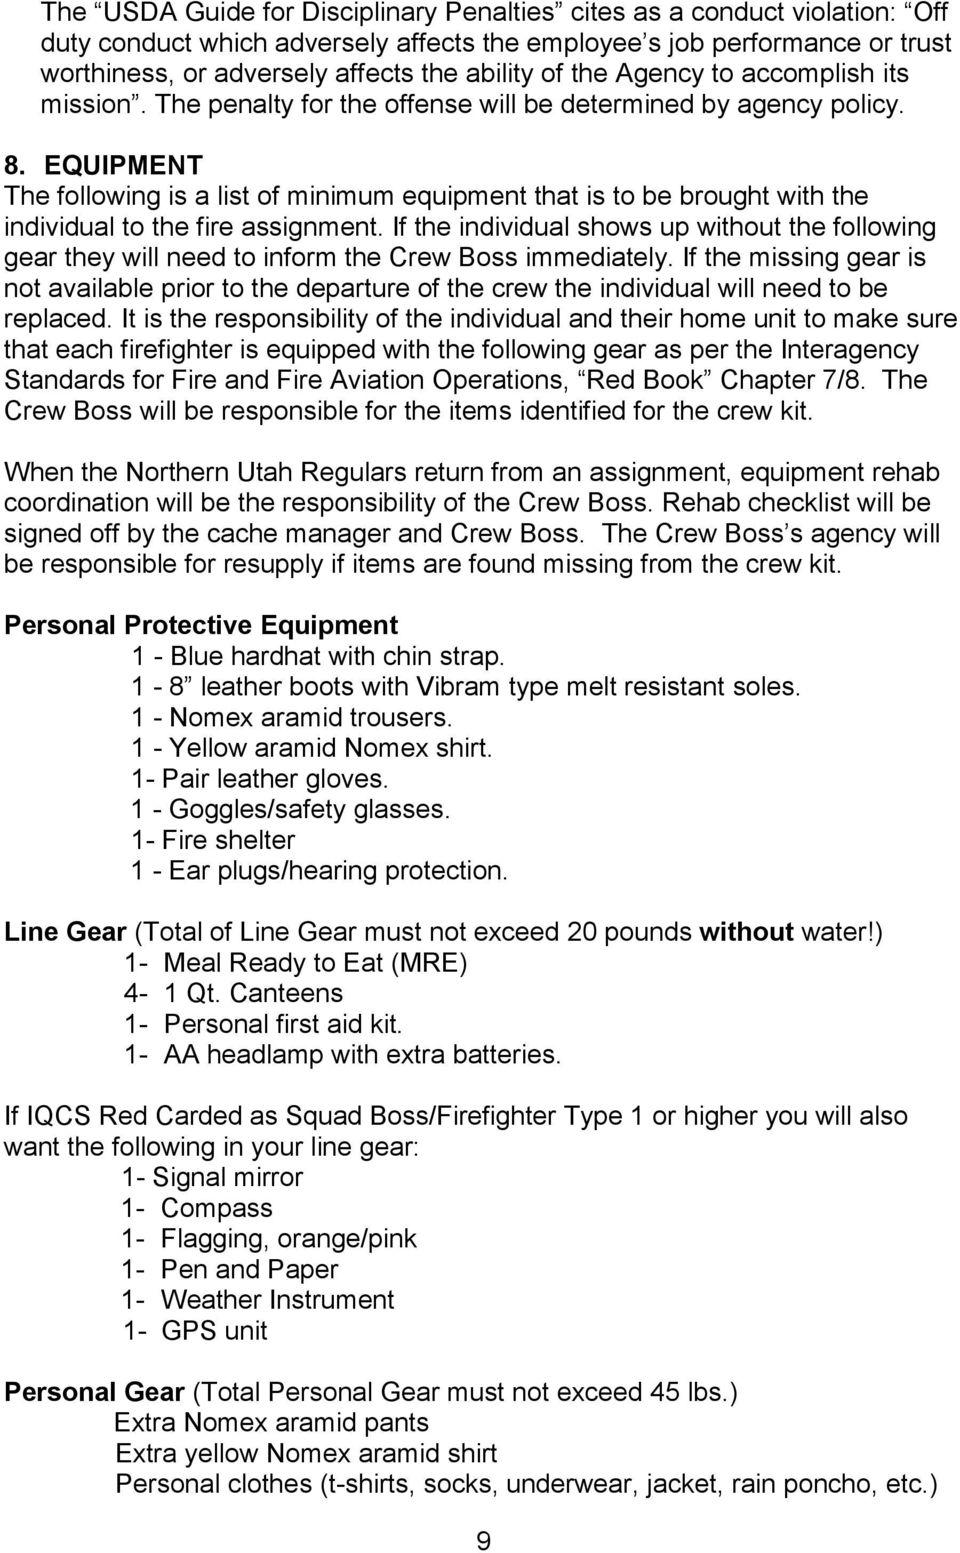 EQUIPMENT The following is a list of minimum equipment that is to be brought with the individual to the fire assignment.